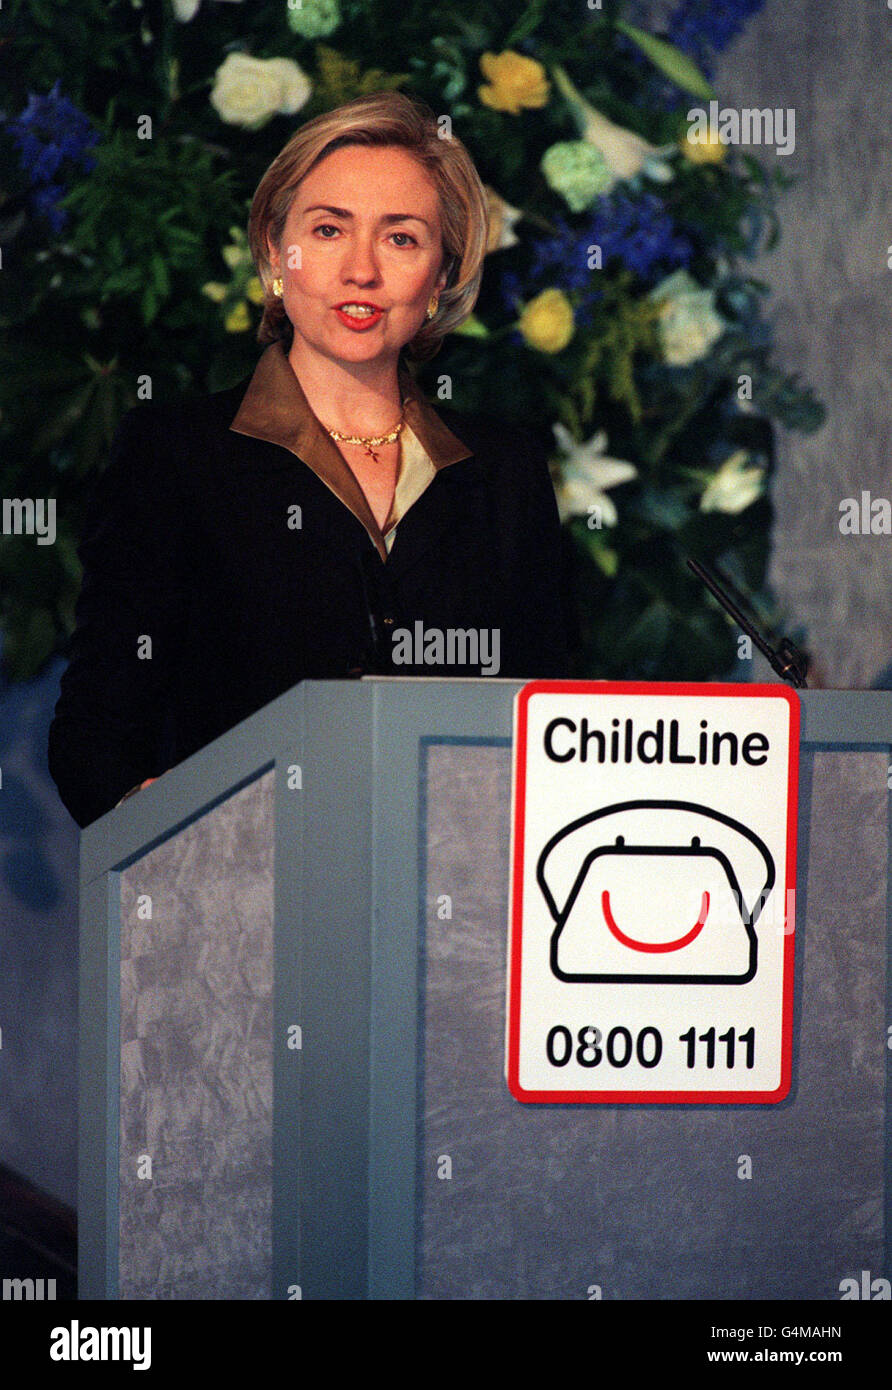 ChildLine/Hillary Clinton speech Stock Photo